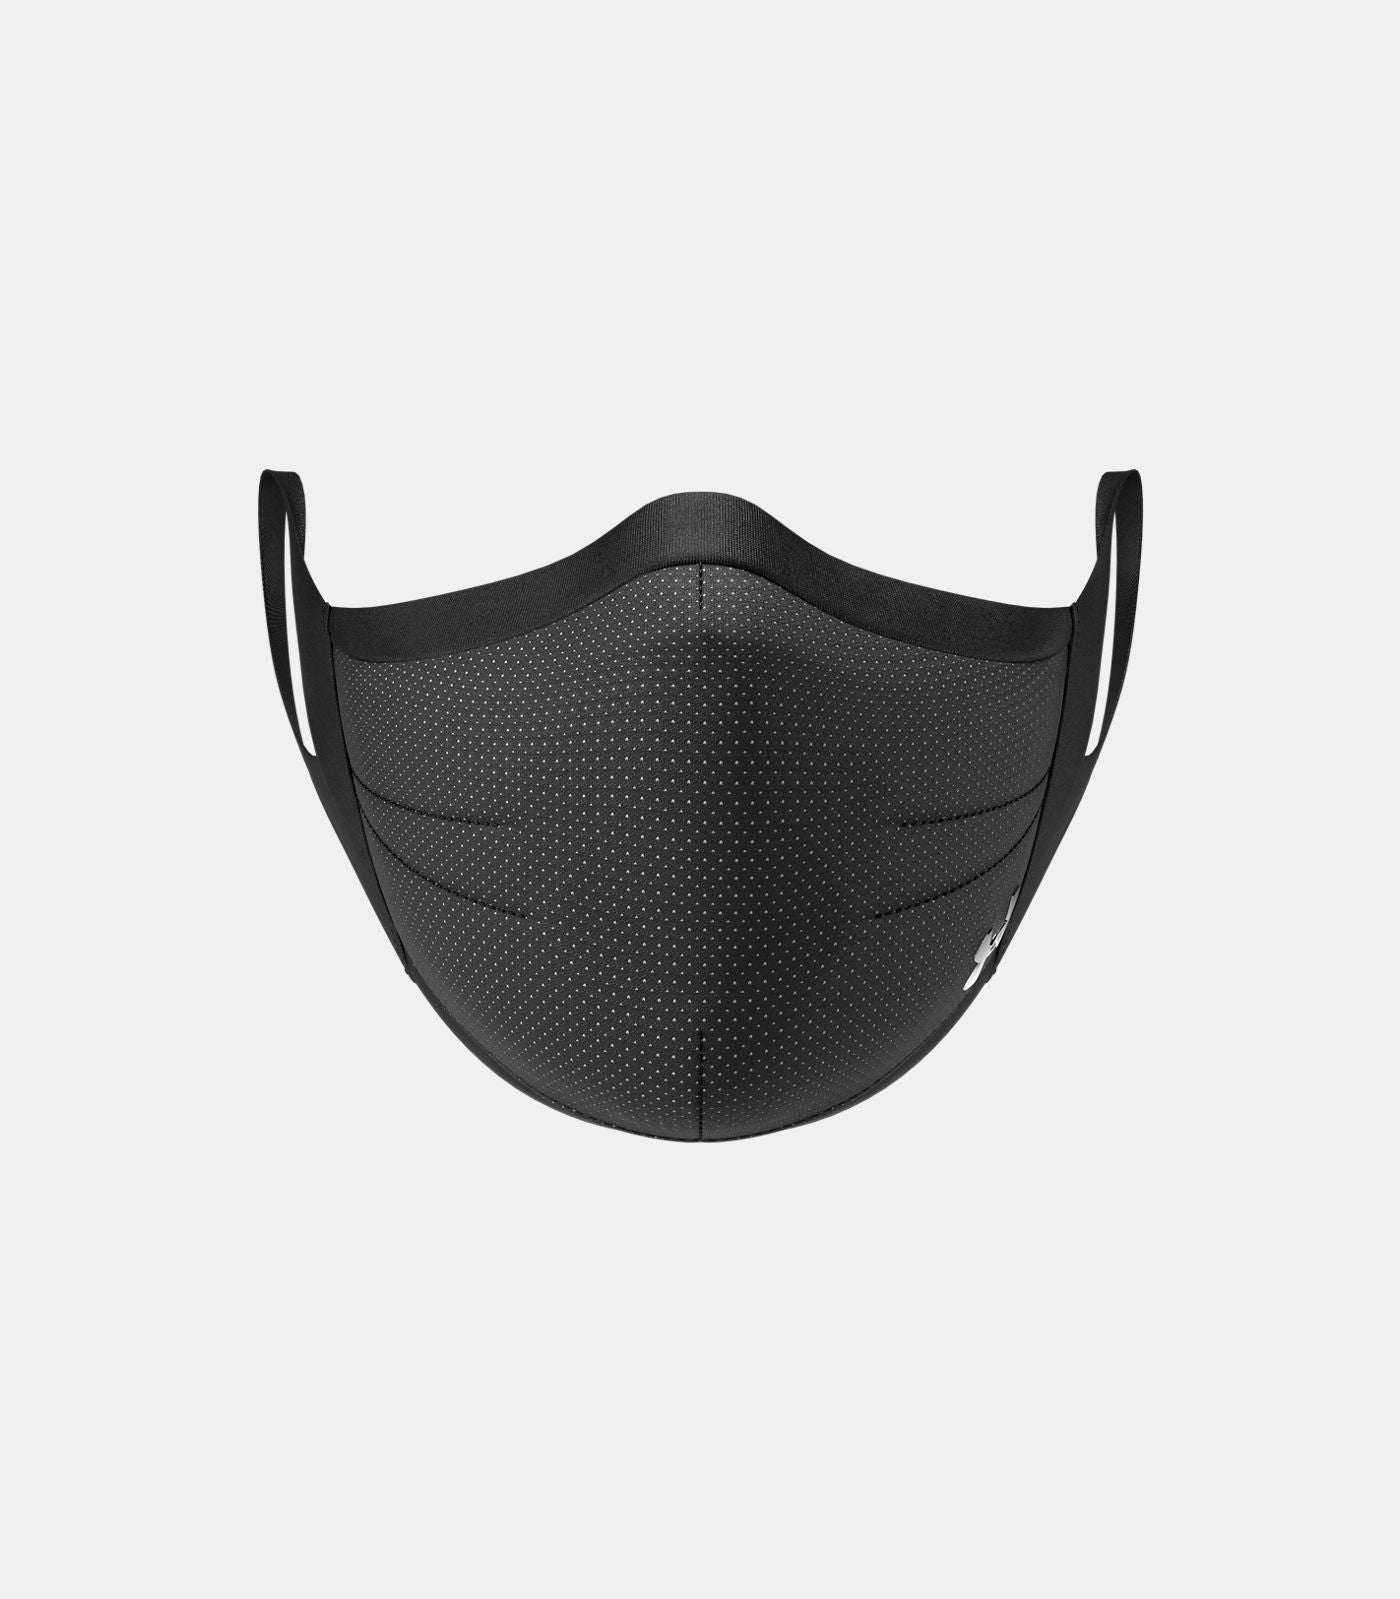 UA Sportsmask (002 - black/charcoal)